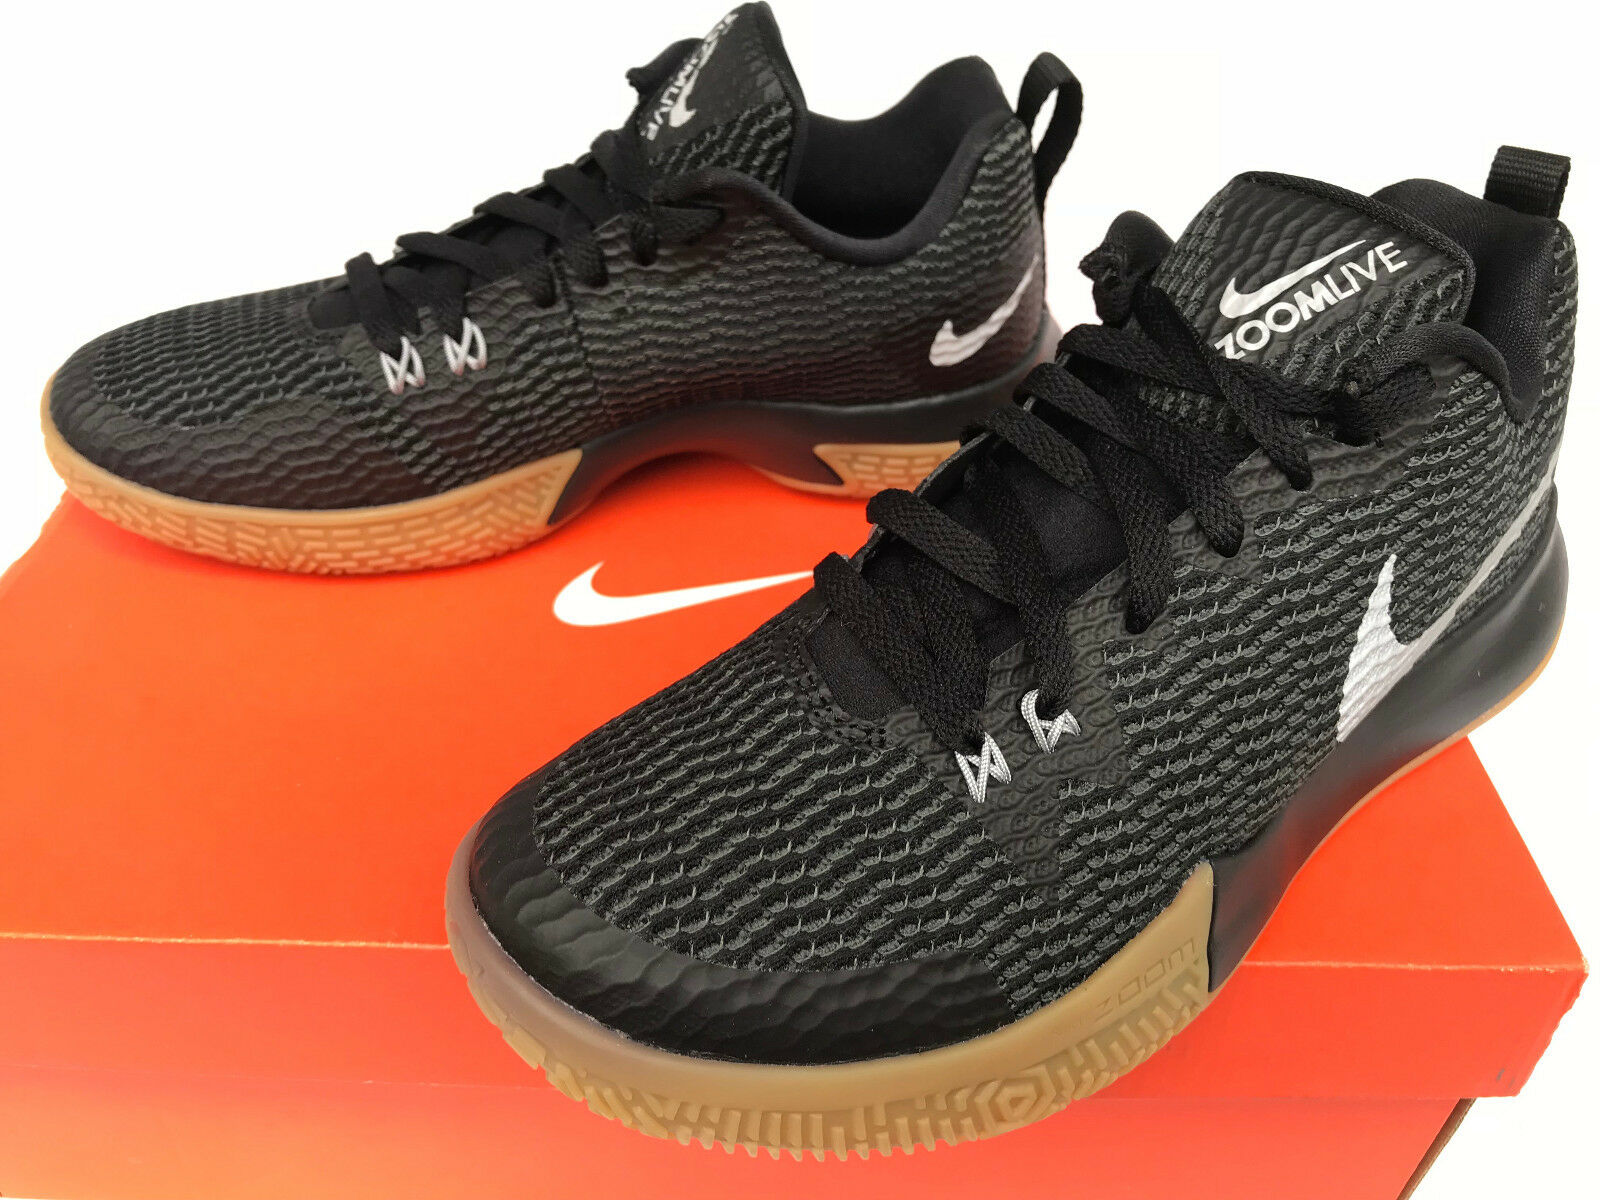 db22b1d87e Zoom Shift II AH7578-001 Gum ZoomLive Basketball shoes Women's 7.5 Black  Nike nytsed1926-Athletic Shoes